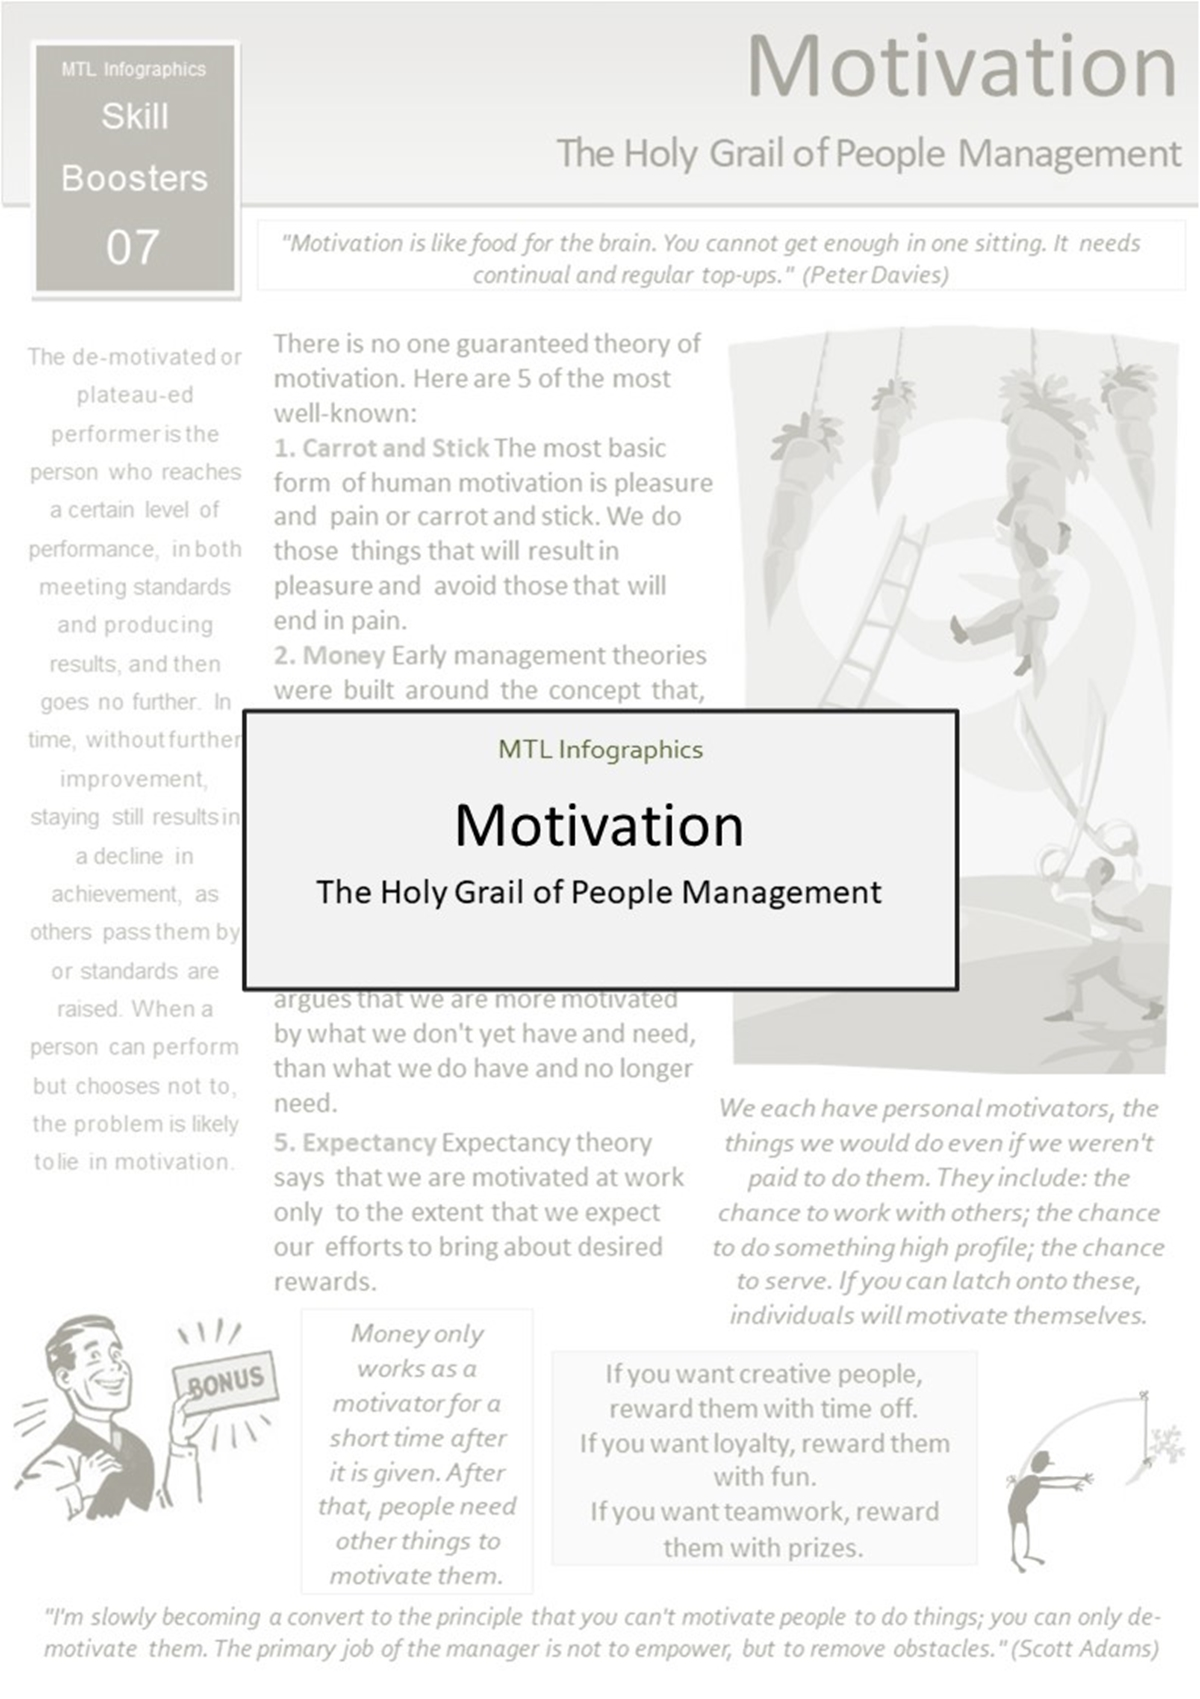 MTL Infographics Skill Boosters: 007. Motivation - Slide 1++